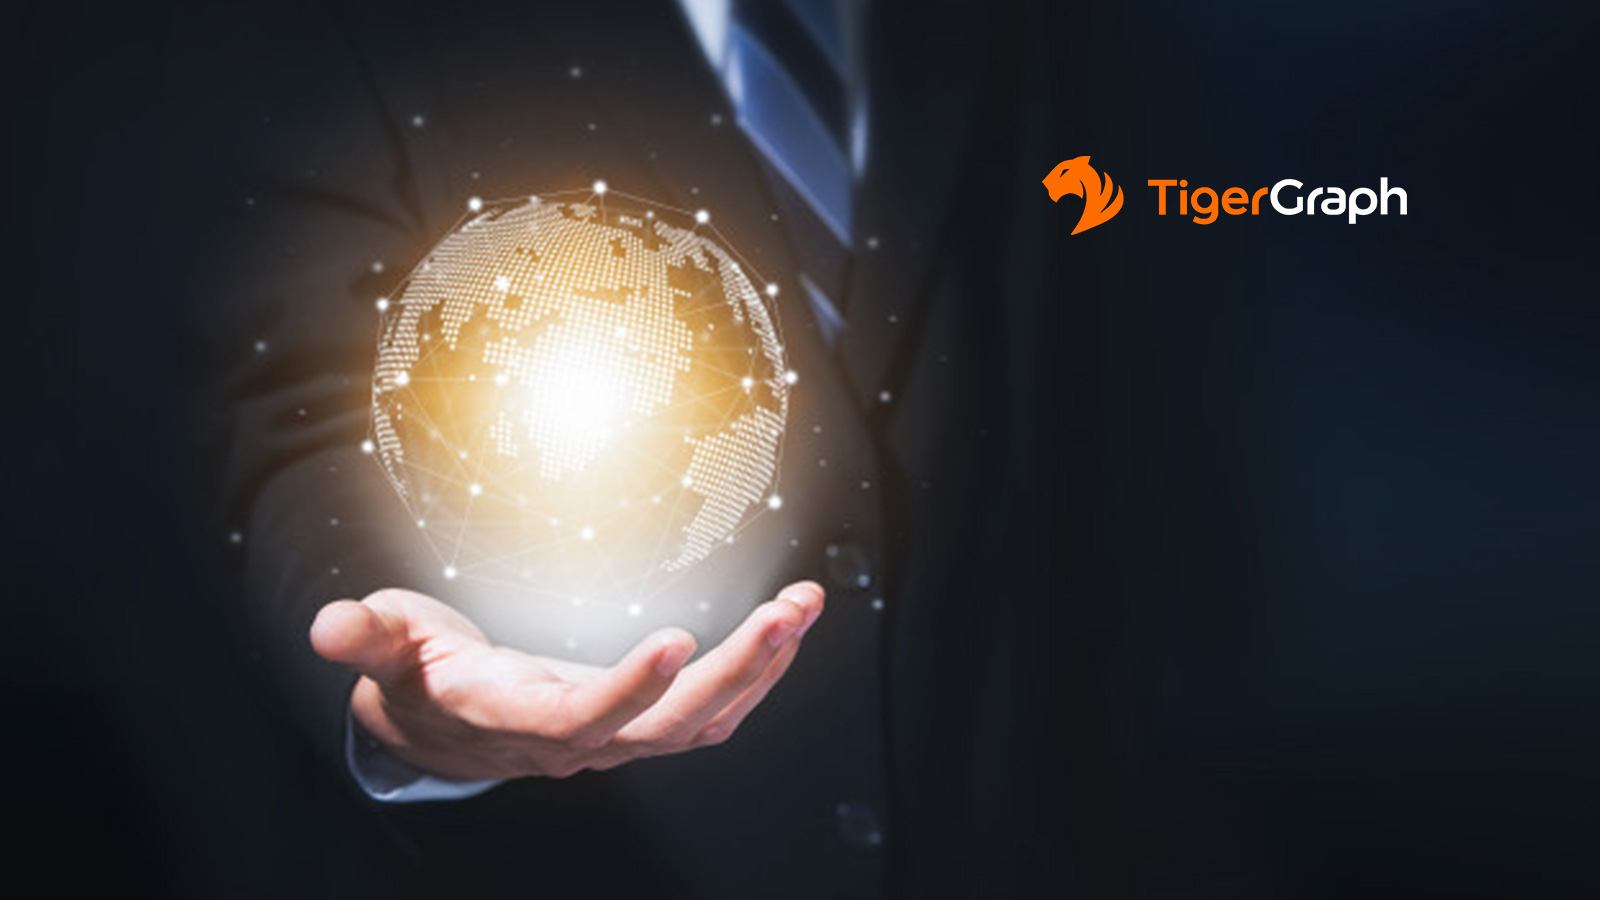 TigerGraph Celebrates Record-Breaking Year Of Growth As Demand For Fastest, Most Scalable Graph Analytics Platform Continues To Soar